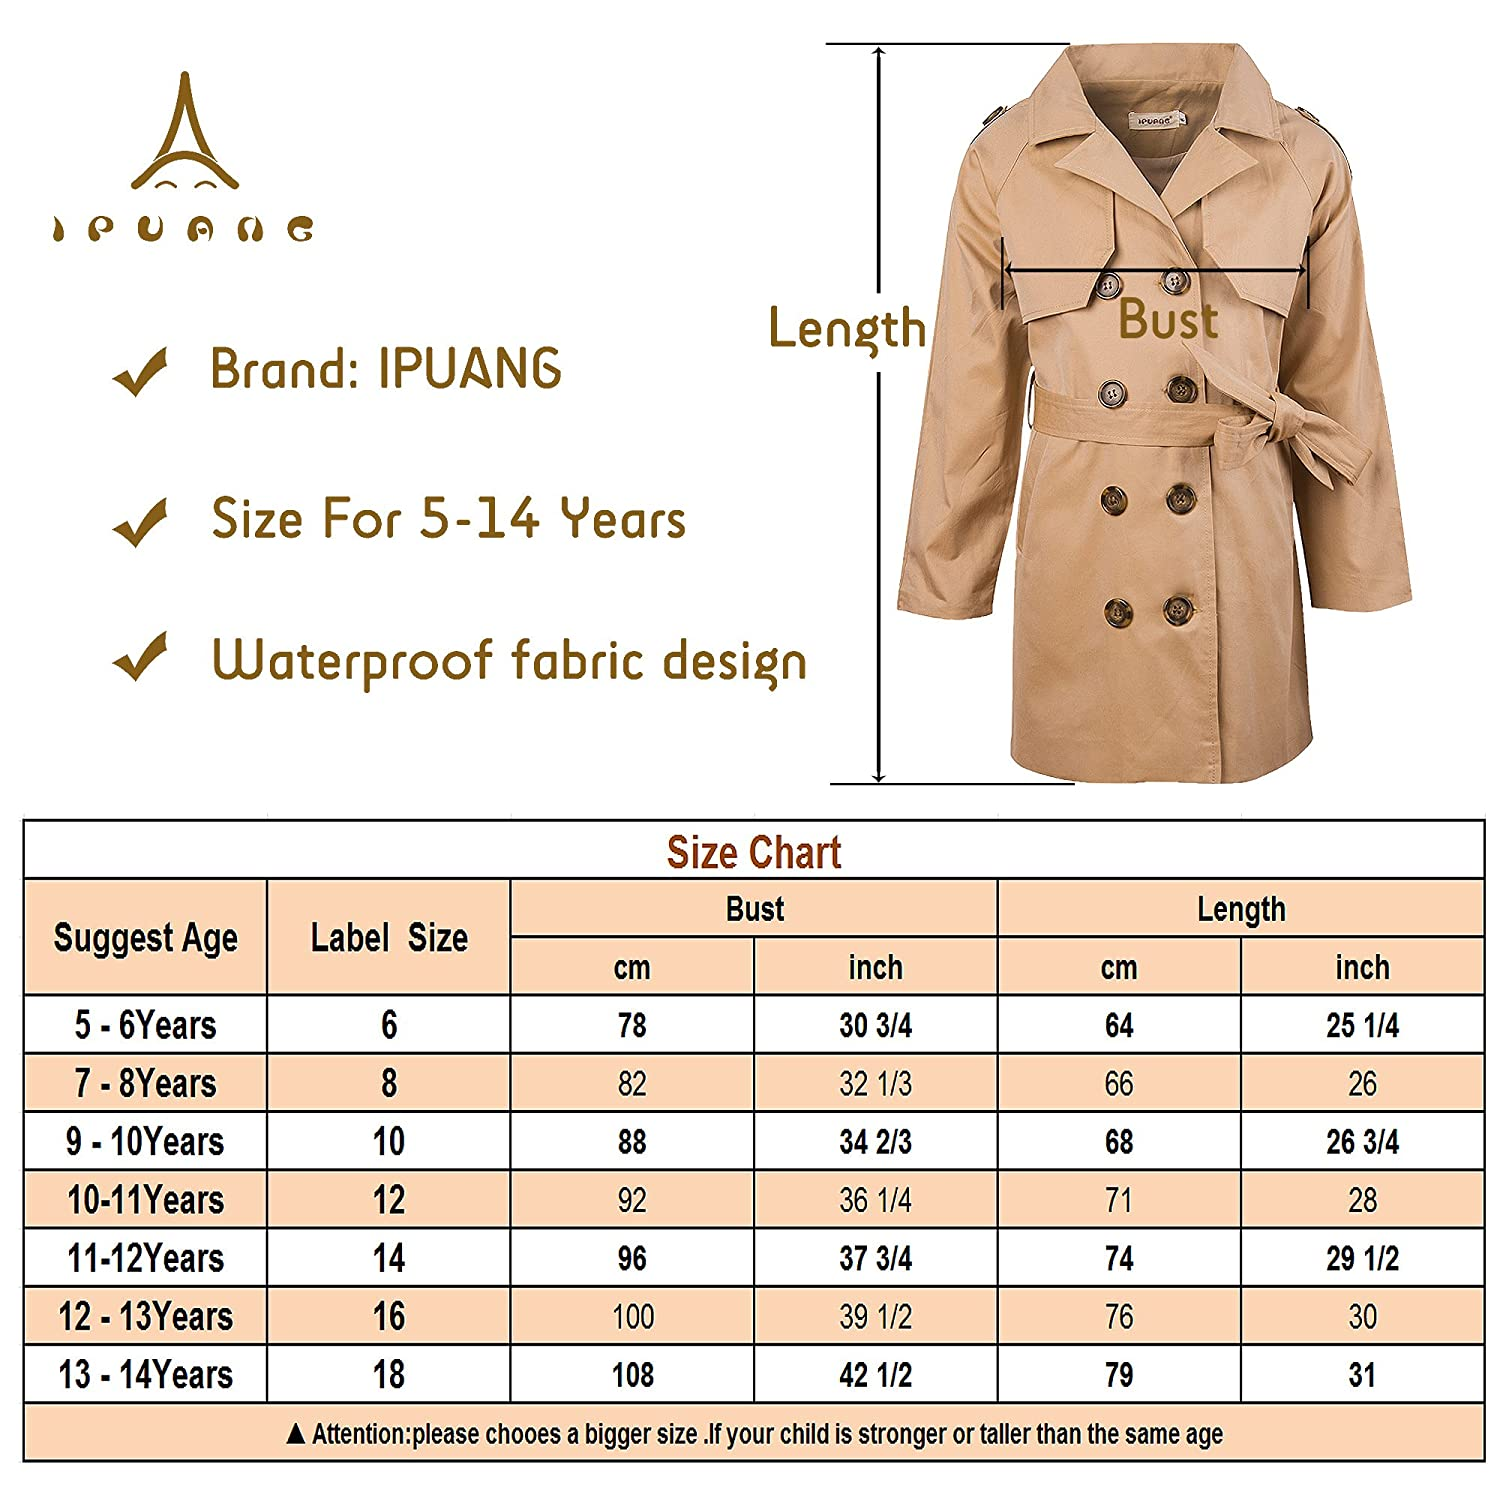 813f55290 ... Ipuang Girls Cotton Long Sleeves Trench Jacket Dress Coats Camel  Waterproof ...